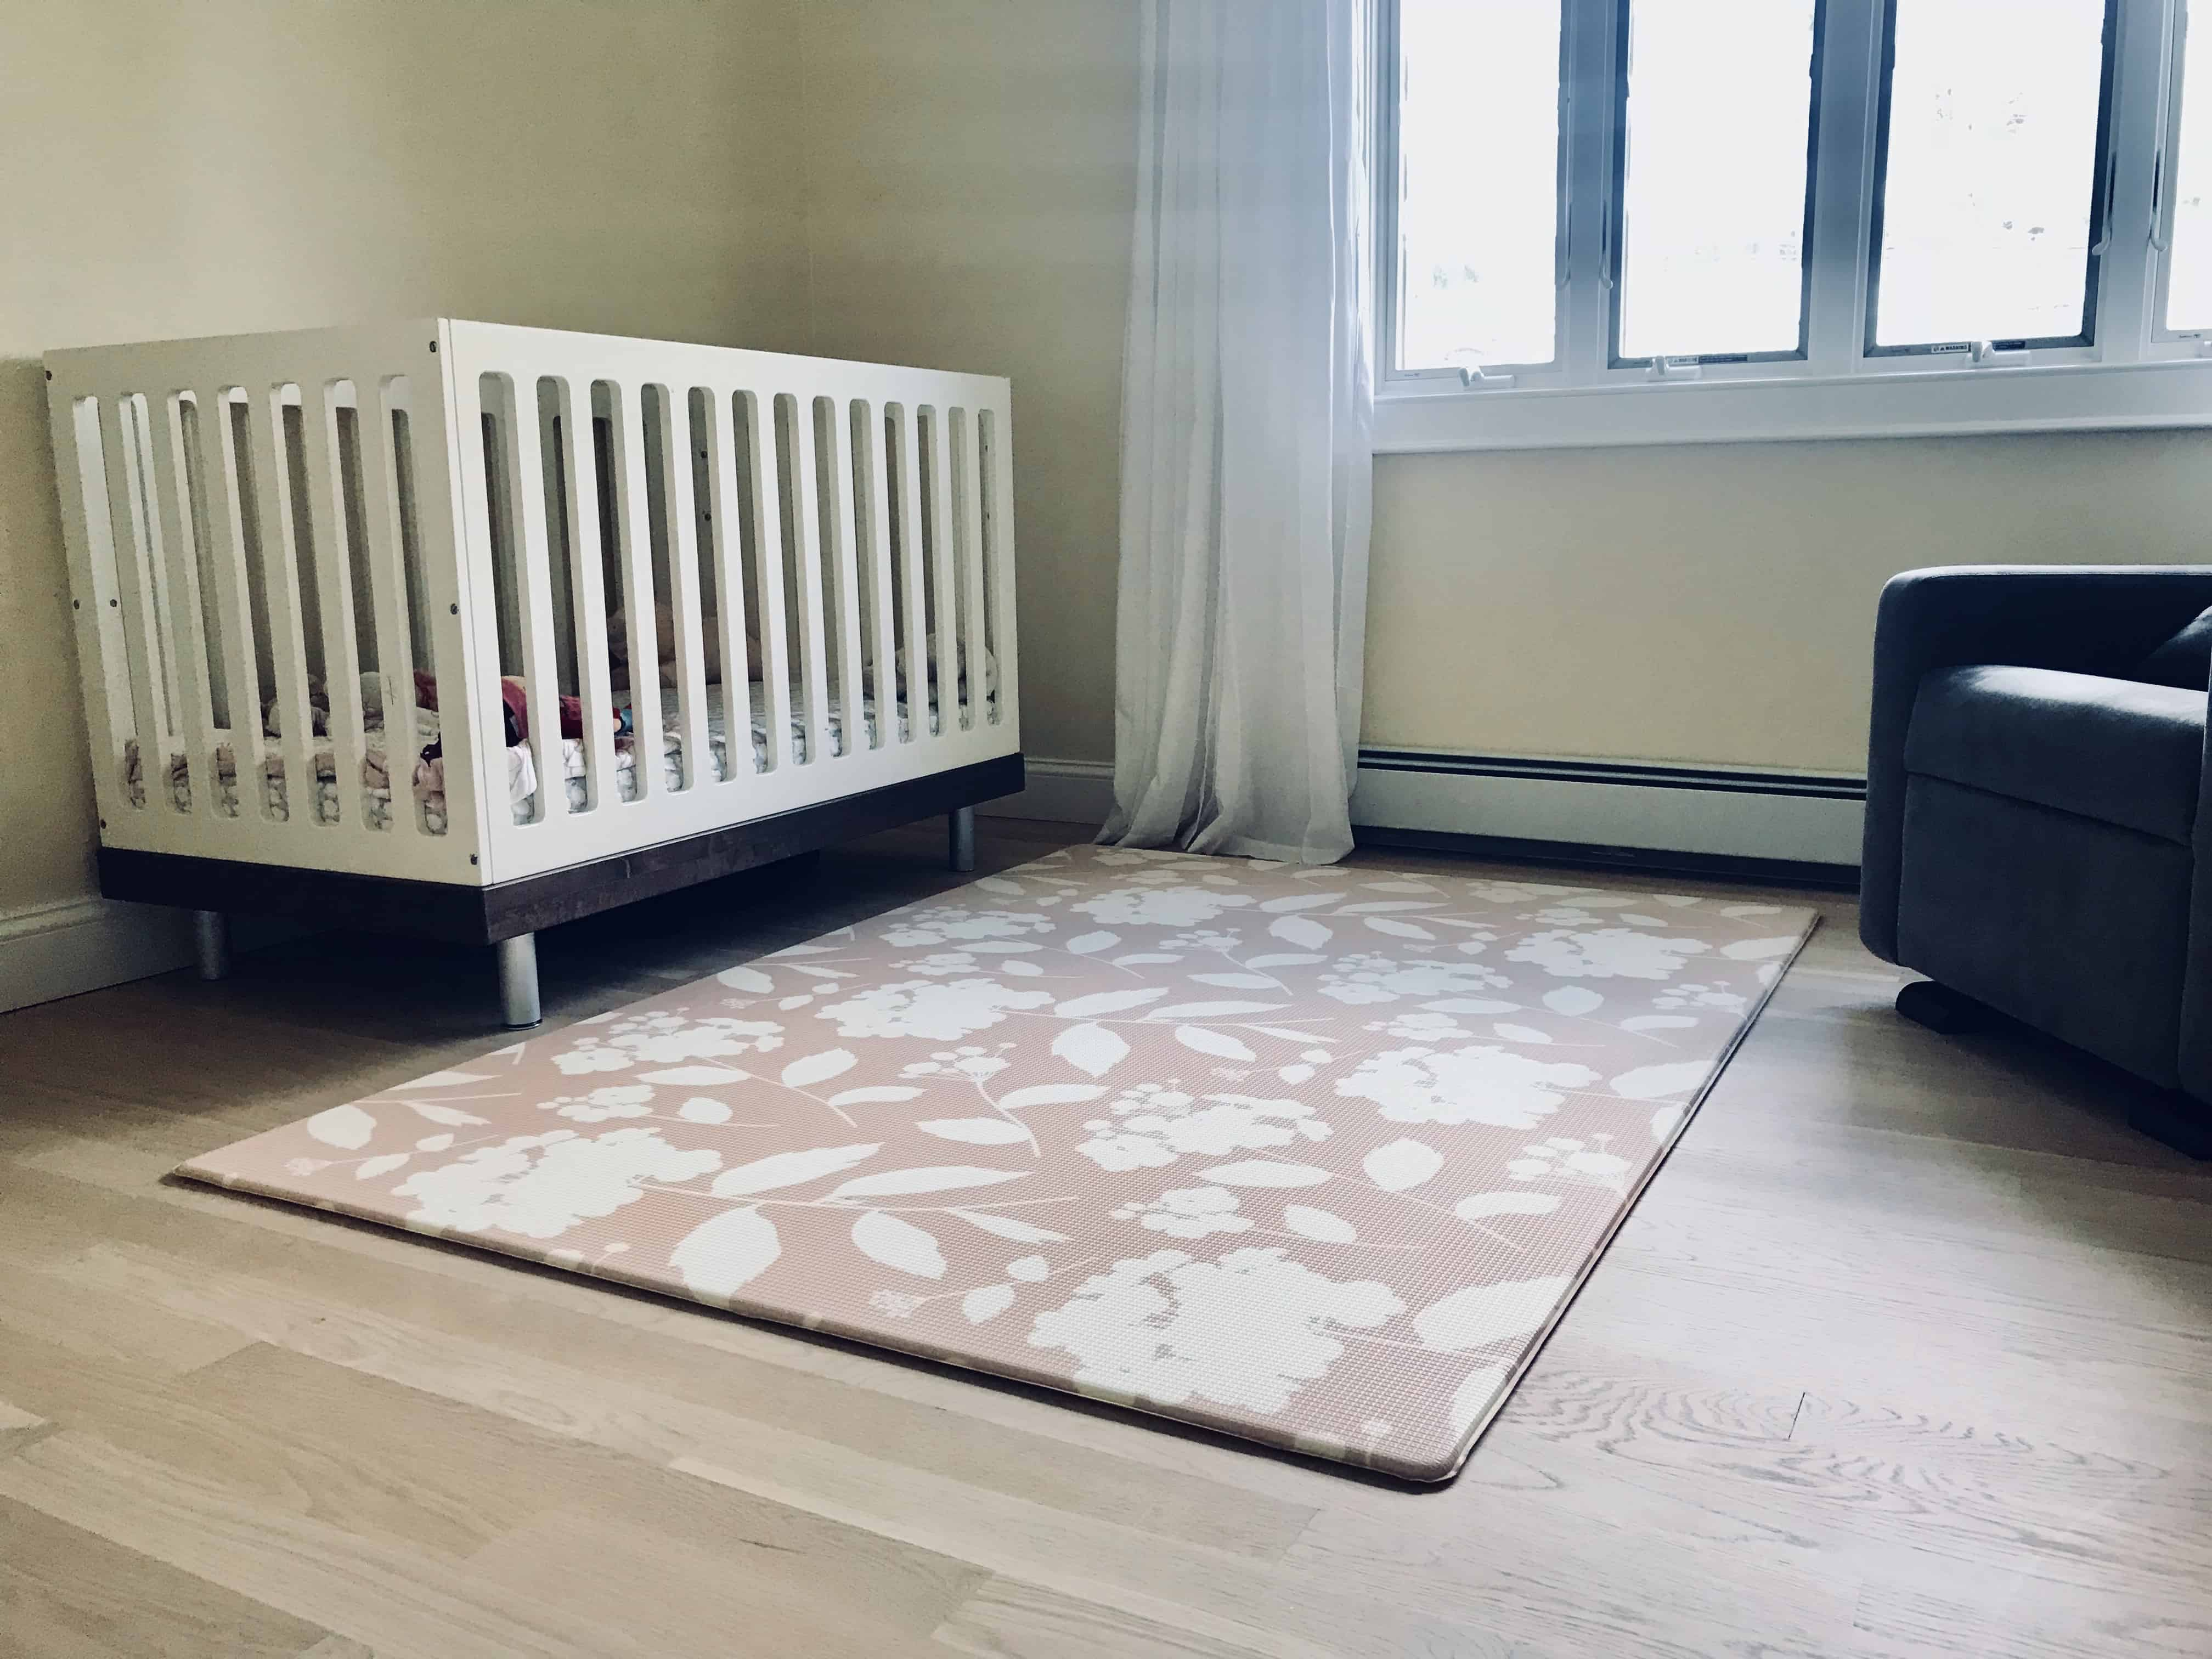 If You Decide To Purchase A Comfort Design Play Mat I Would Love Hear What Think